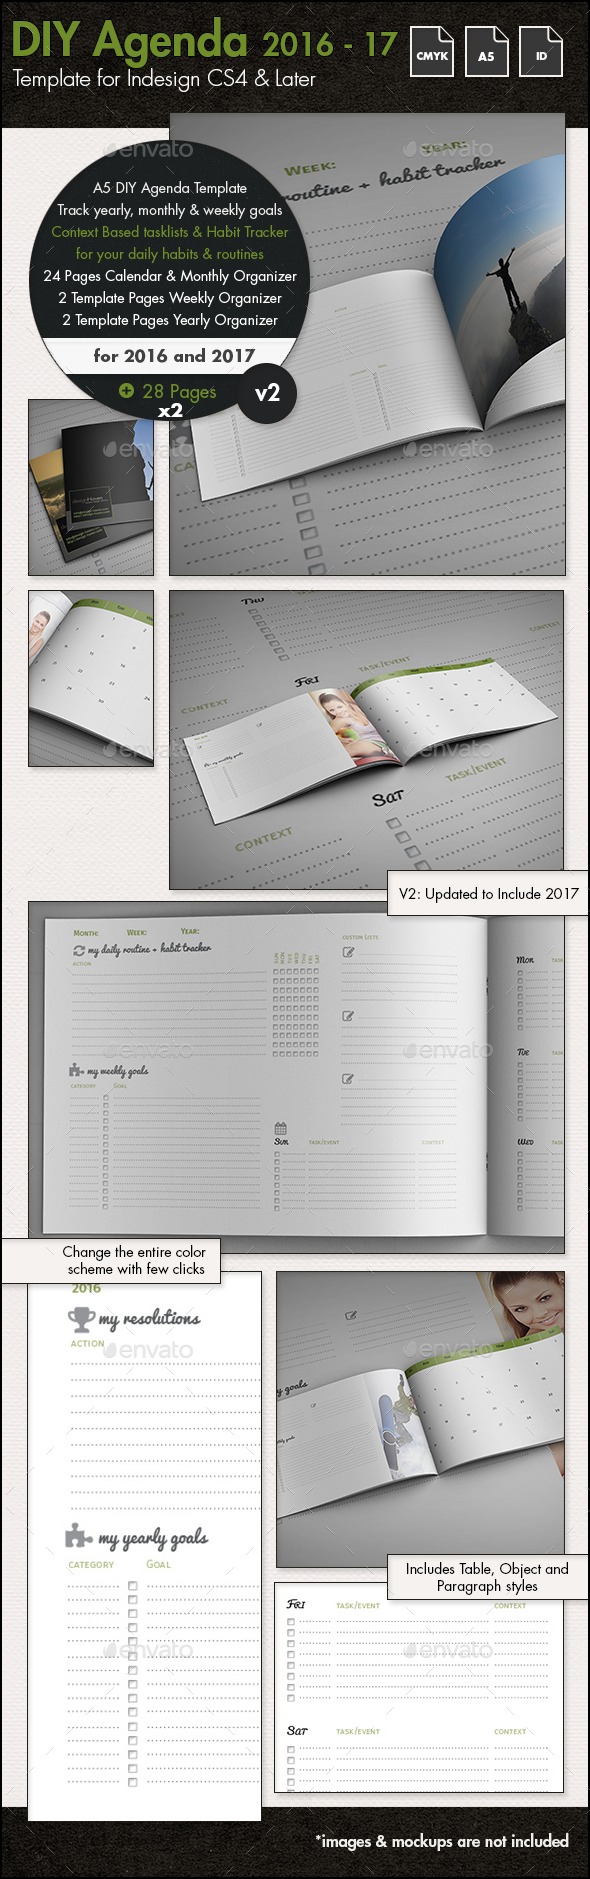 DIY Planner   Calendar Template for 2016 and 2017   A5 by sthalassinos DIY Planner   Calendar Template for 2016 and 2017   A5   Calendars  Stationery